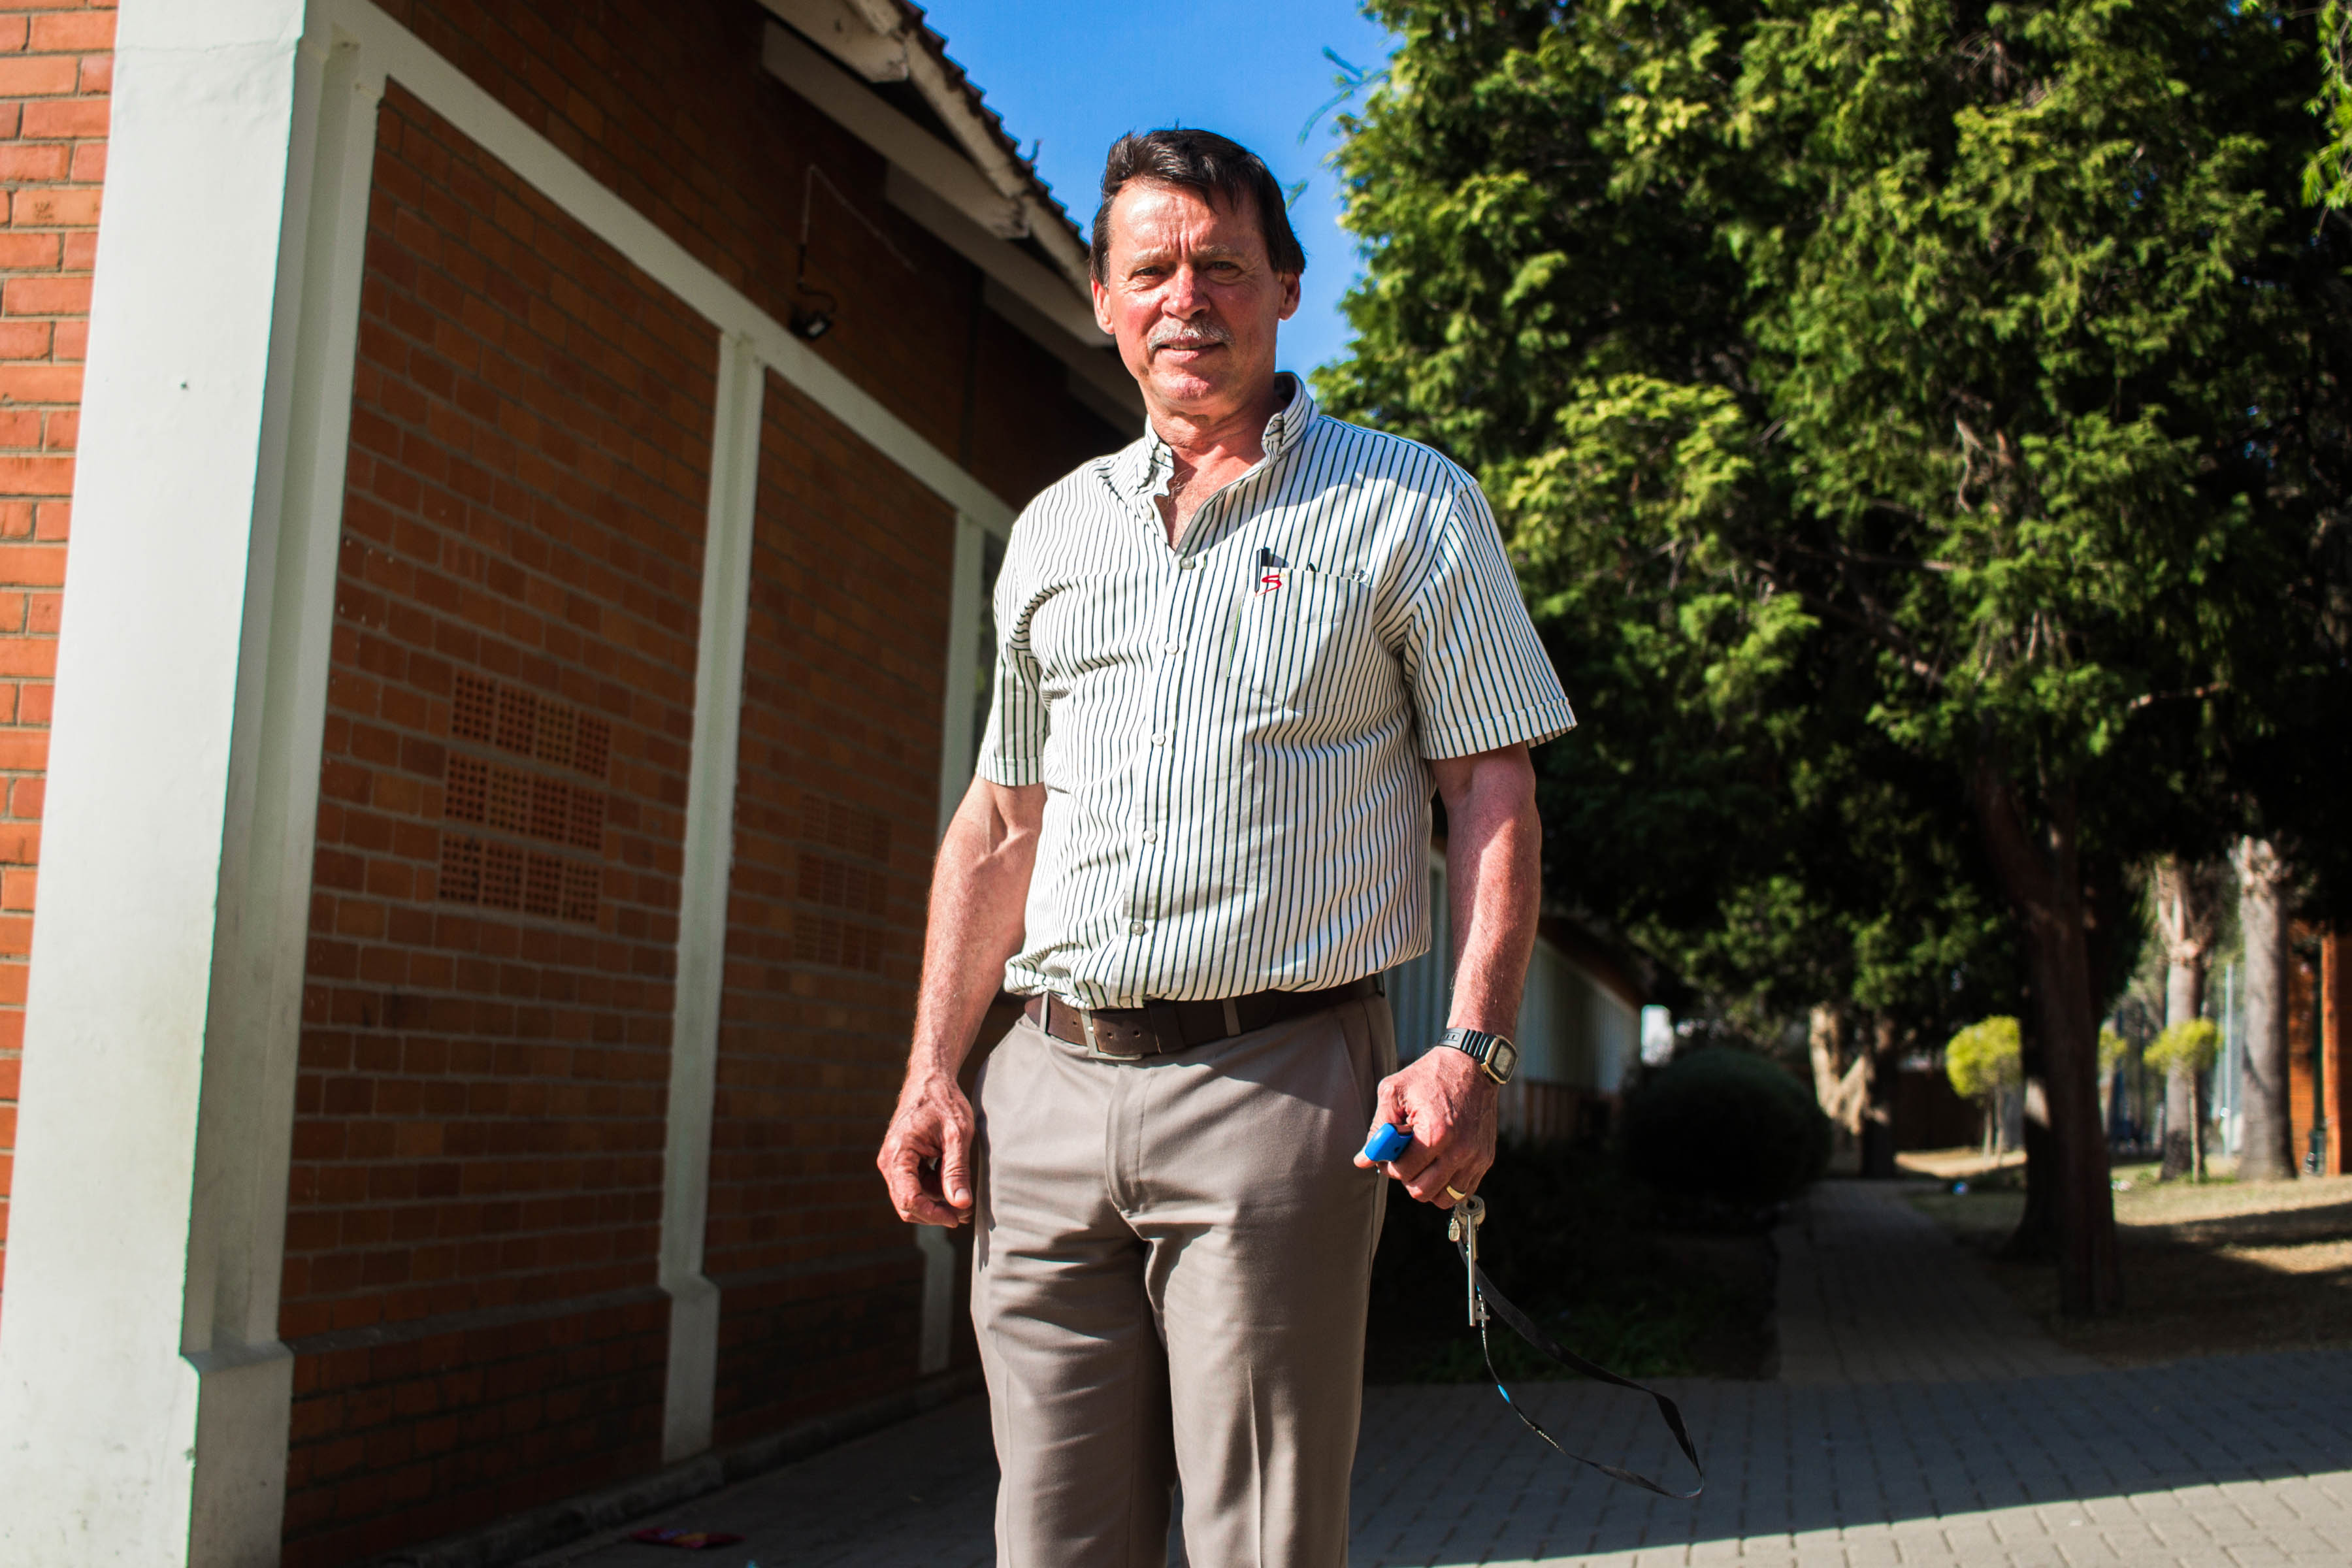 13 September 2019: Andre Spies, the principal of Newcastle Senior Primary School, is optimistic about the future of the town but holds a dim view of its management.